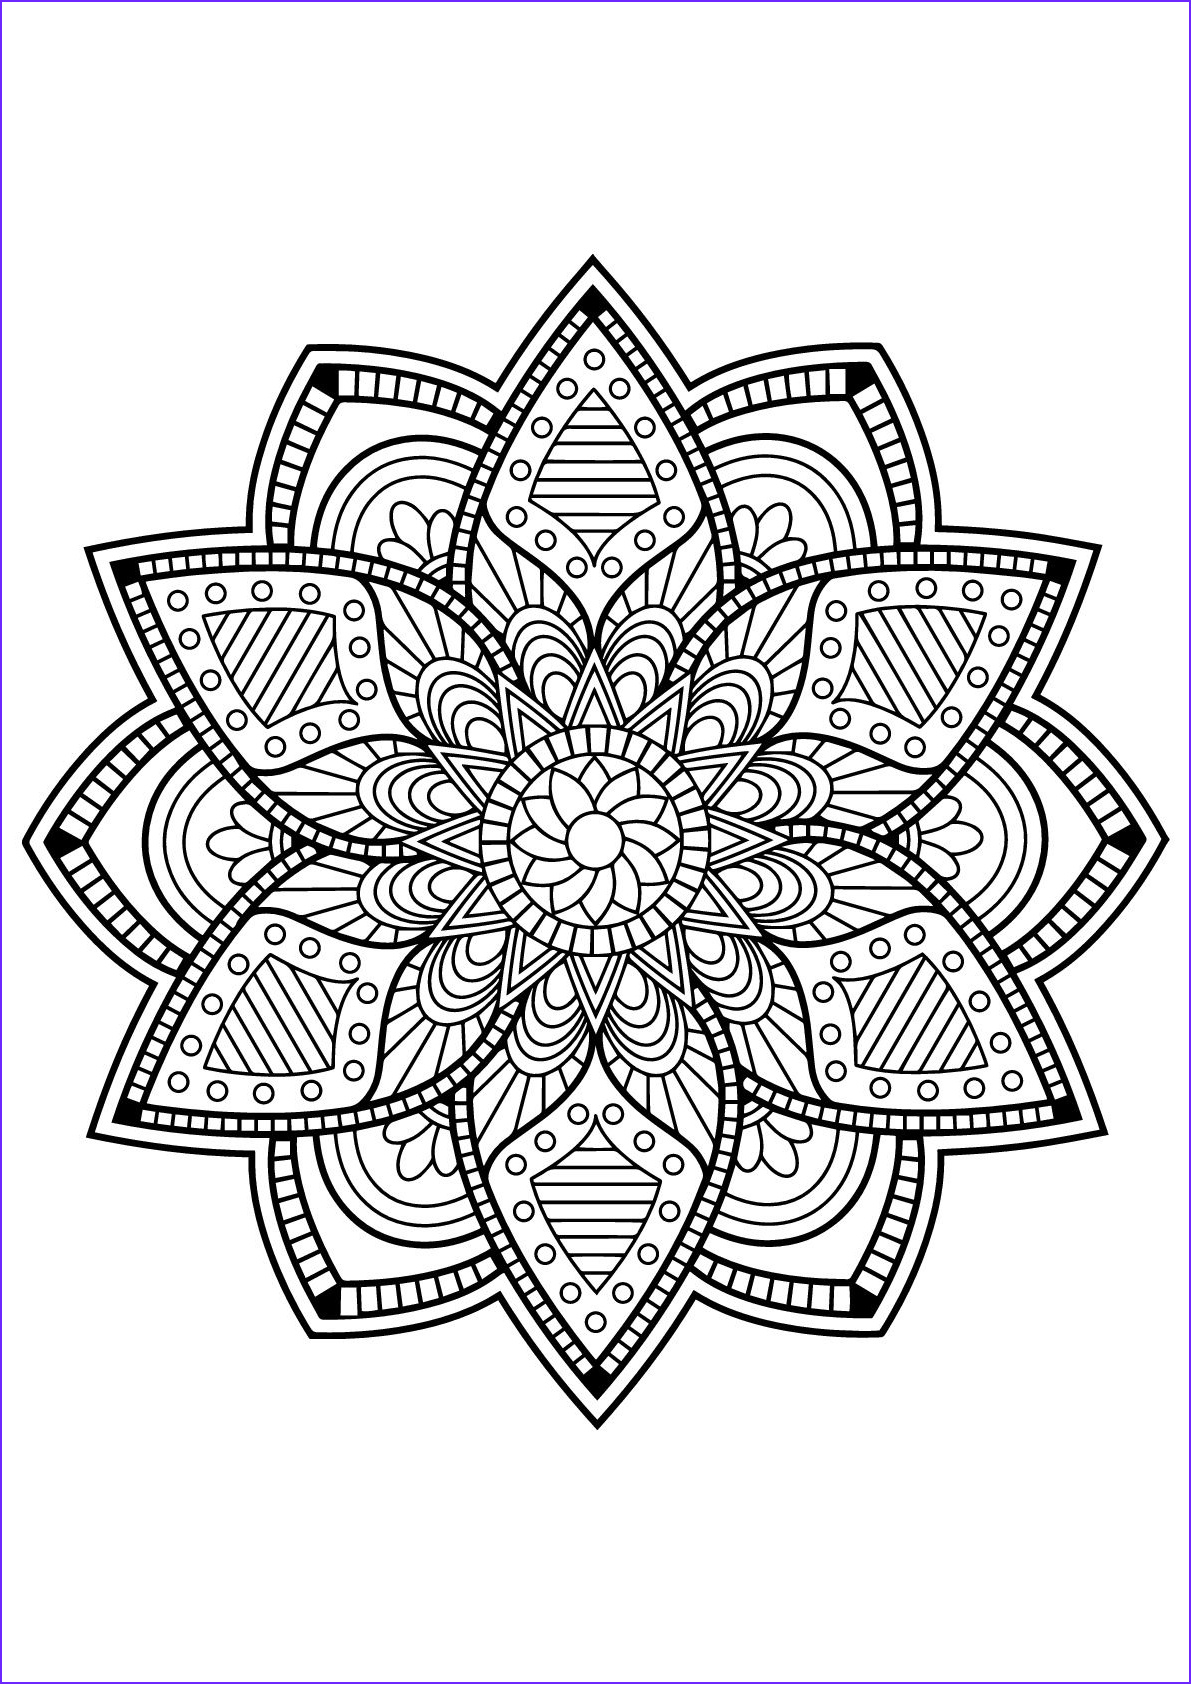 Adult Coloring Book Mandala Inspirational Images Here are Difficult Mandalas Coloring Pages for Adults to